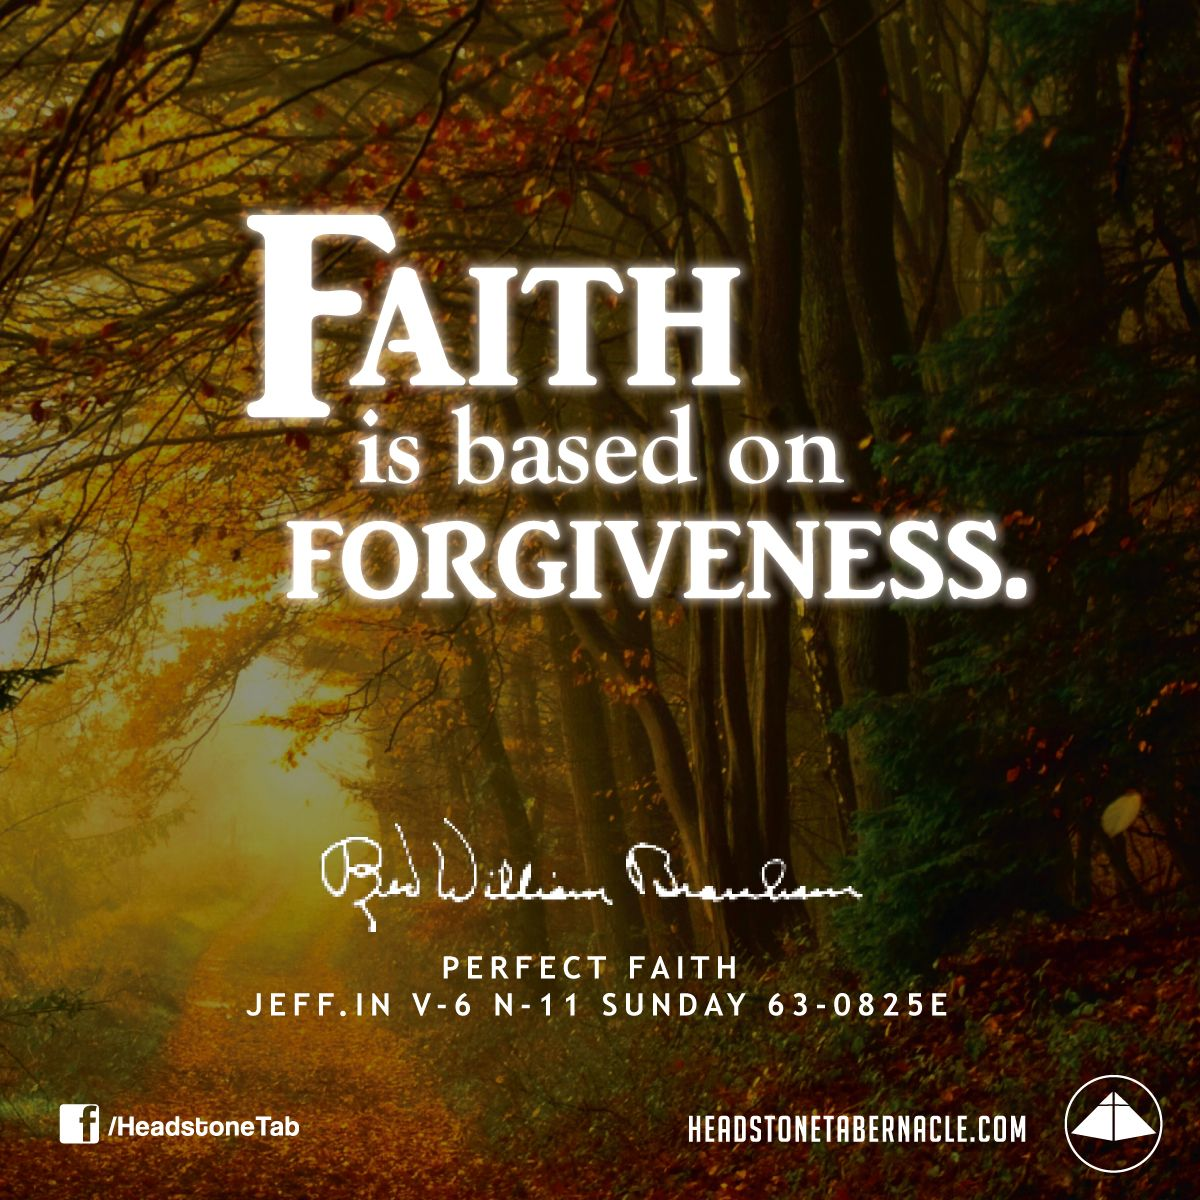 Faith is based on forgiveness  Image Quote from: PERFECT